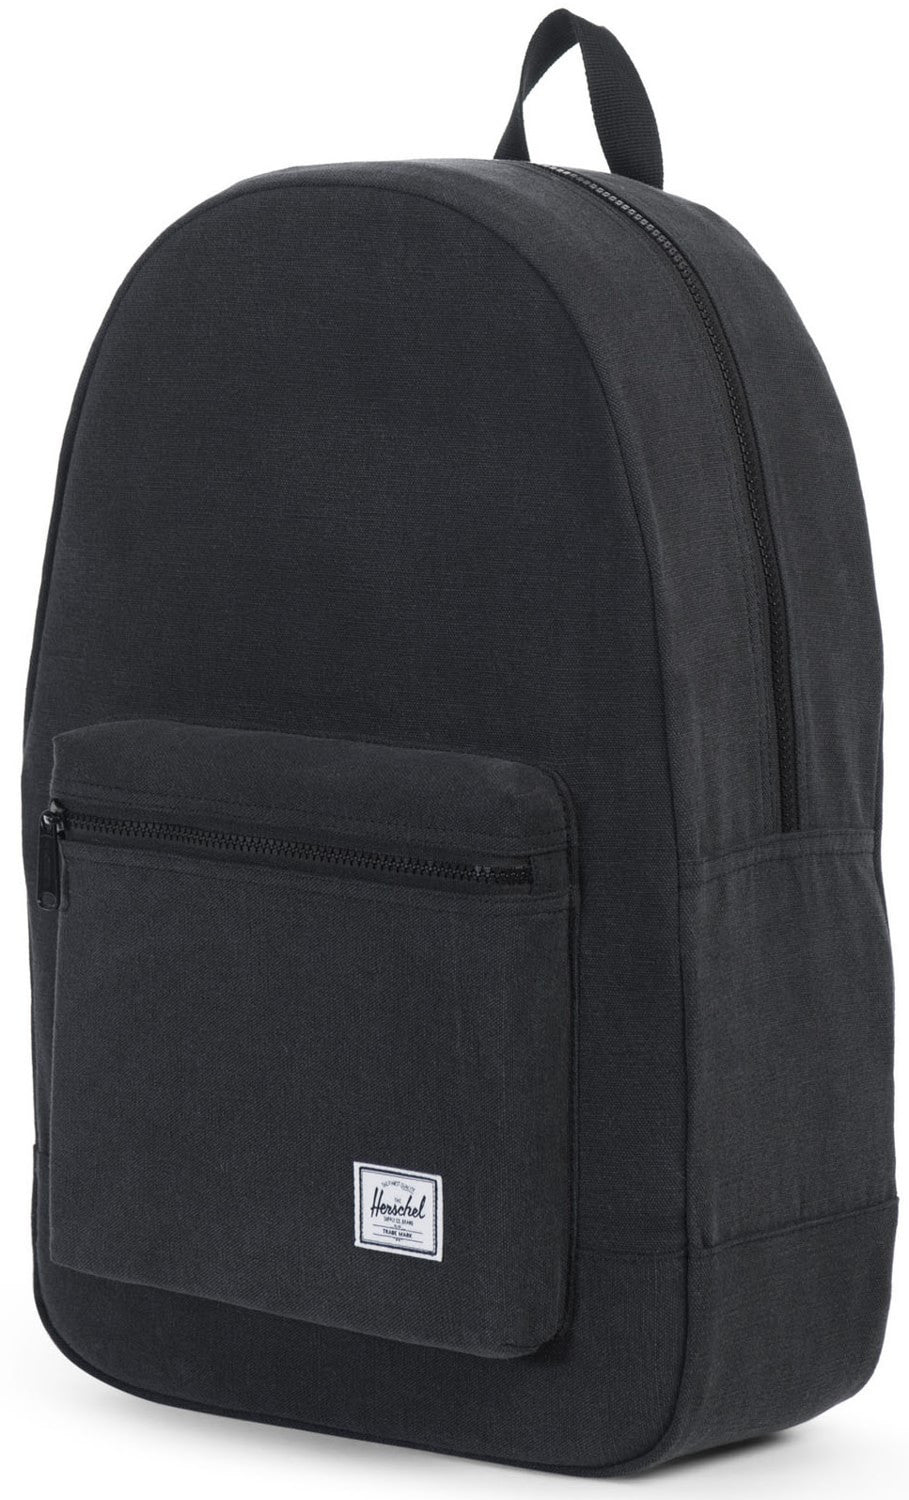 Herschel Supply Co. - Packable Daypack, Black Canvas - The Giant Peach - 2